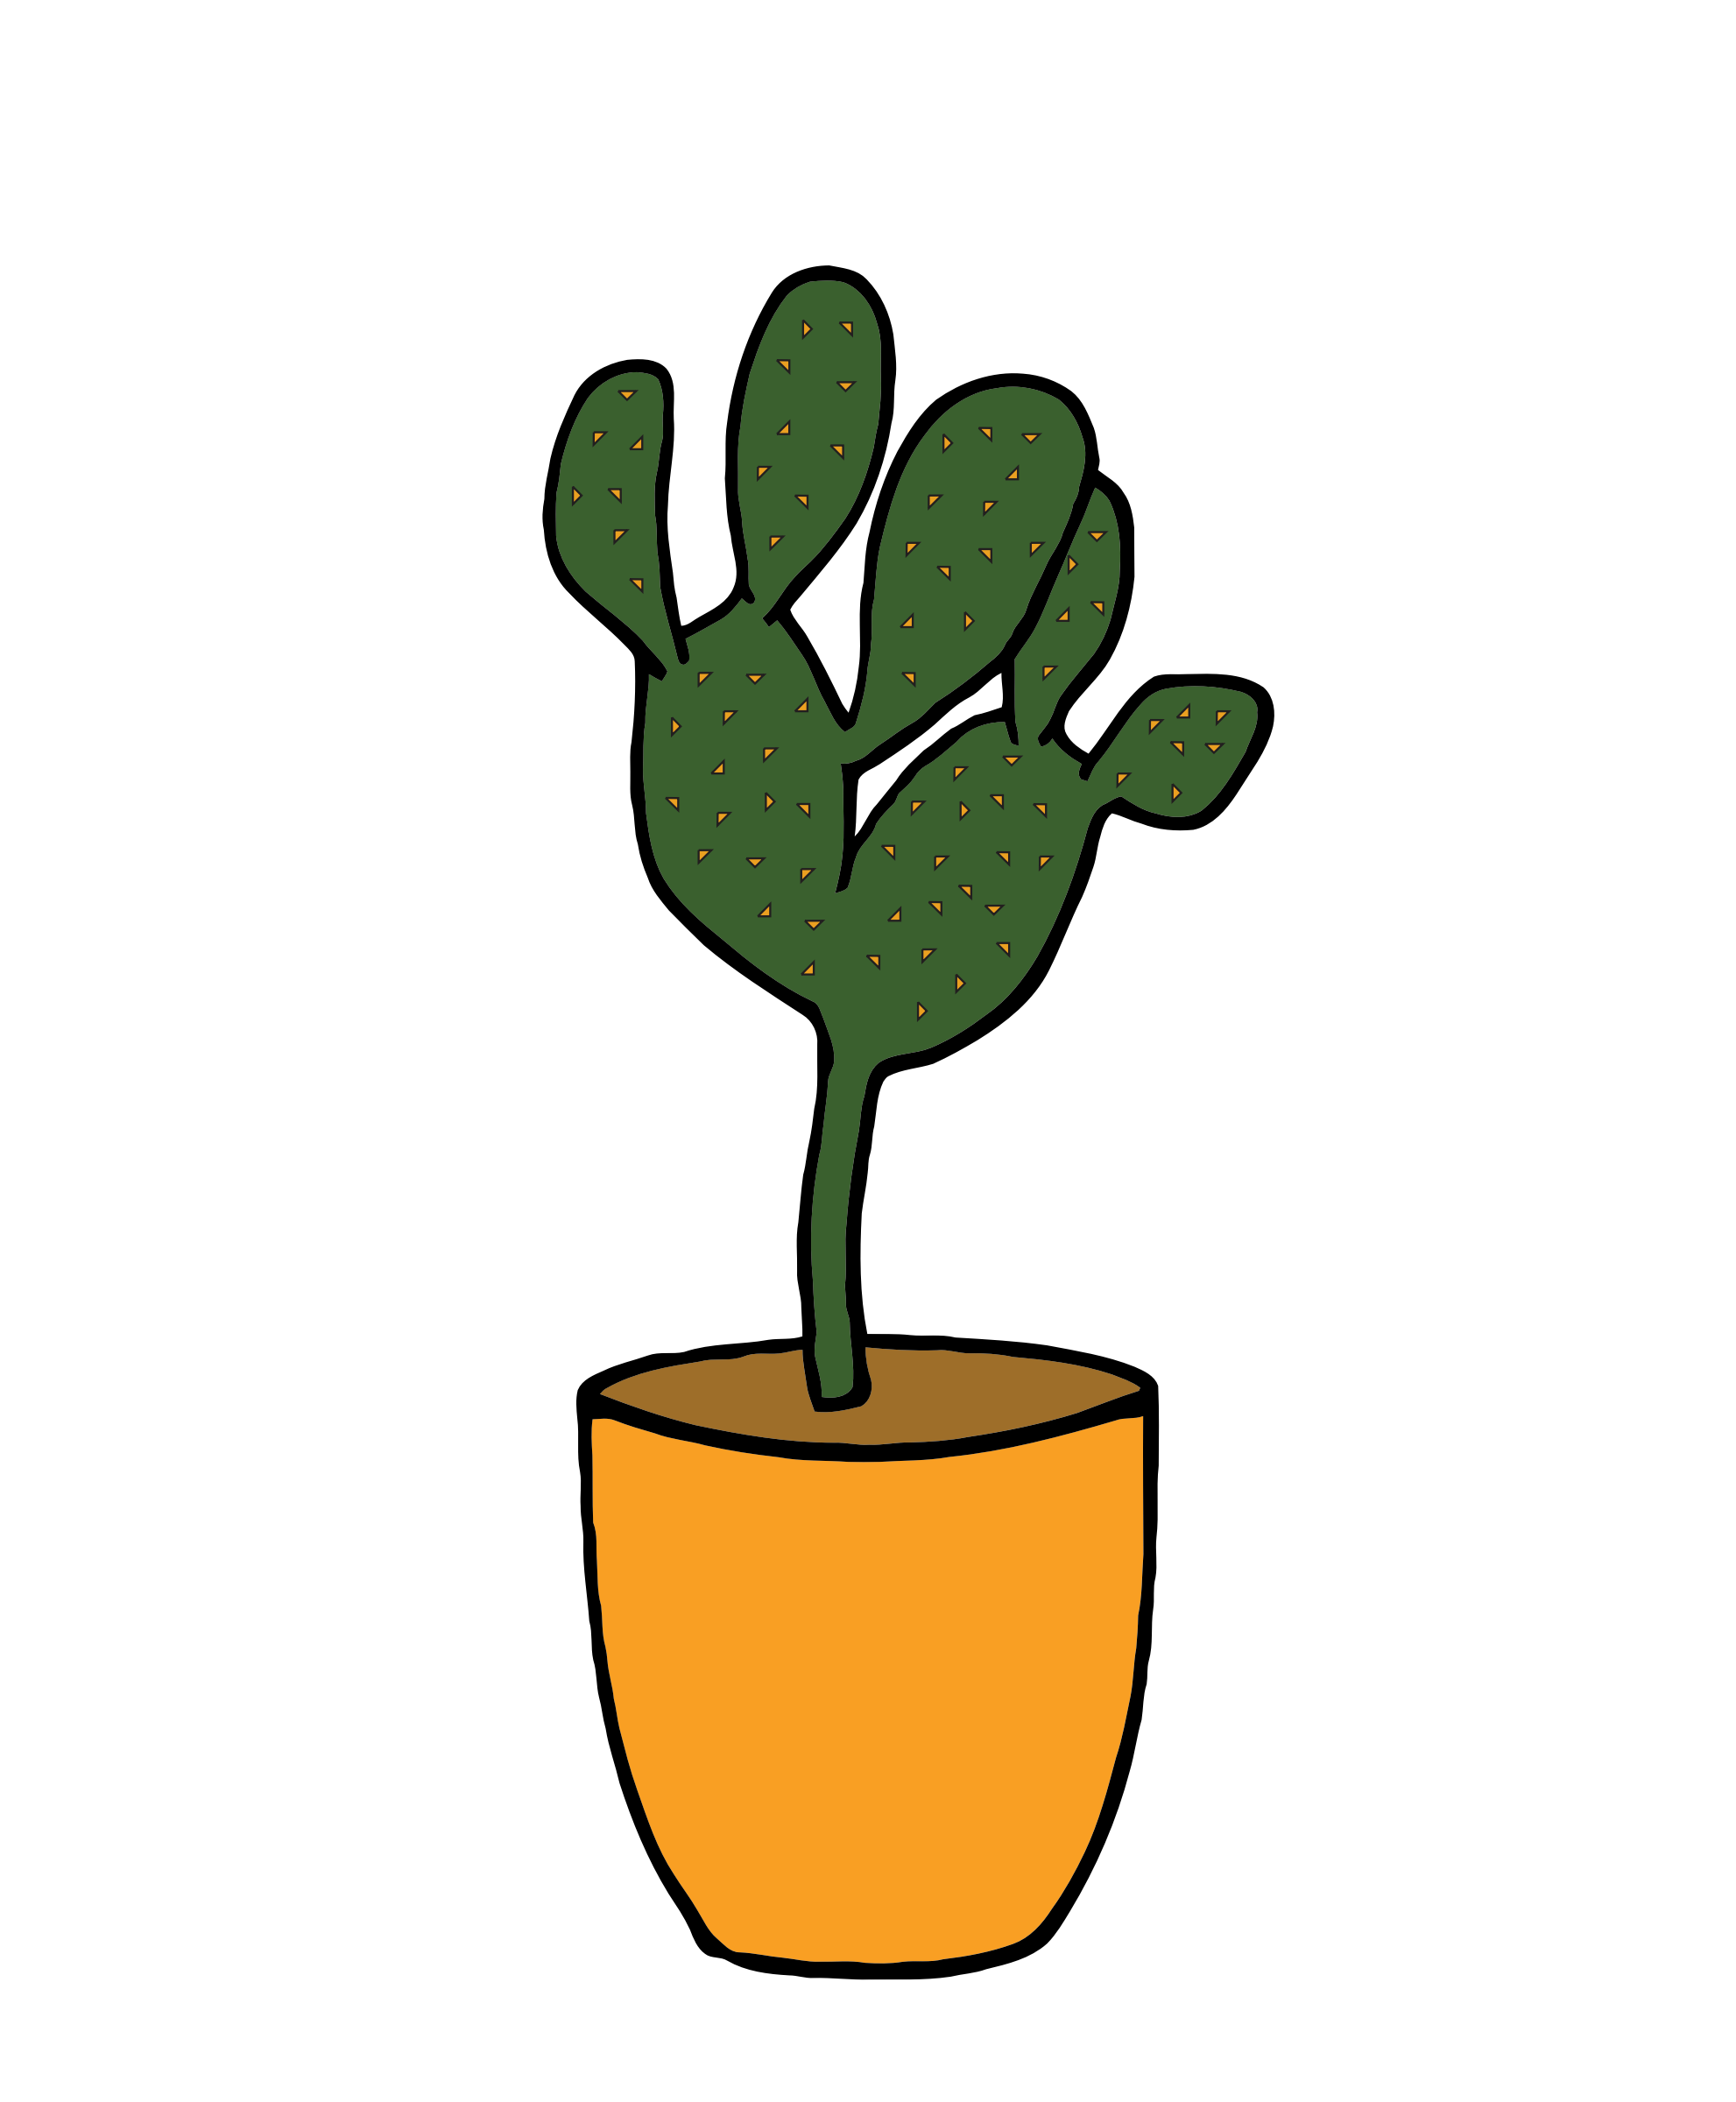 Cactus - Plants 001 by TikiGiki